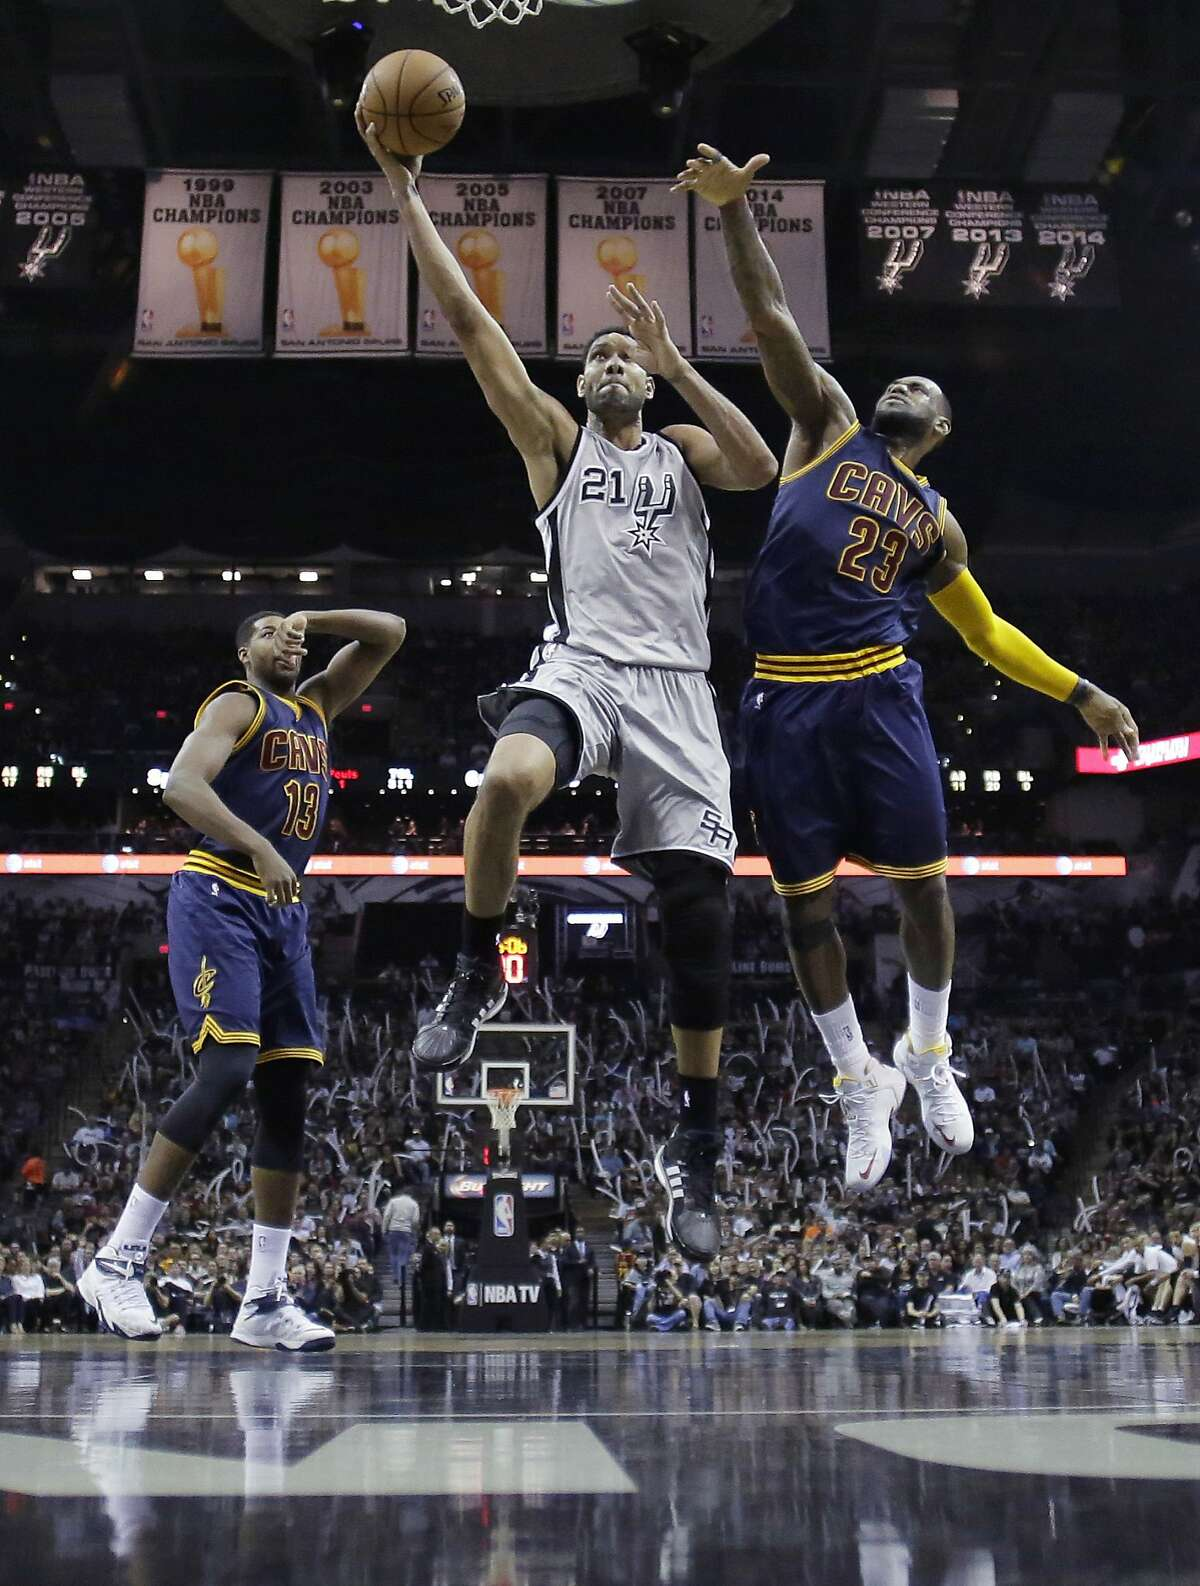 FILE - In this March 13, 2015, file photo, San Antonio Spurs' Tim Duncan (21) shoots next to Cleveland Cavaliers' LeBron James (23) during the second half of an NBA basketball game in San Antonio. Duncan announced his retirement on Monday, July 11, 2016, after 19 seasons, five championships, two MVP awards and 15 All-Star appearances. It marks the end of an era for the Spurs and the NBA. (AP Photo/Eric Gay, File)